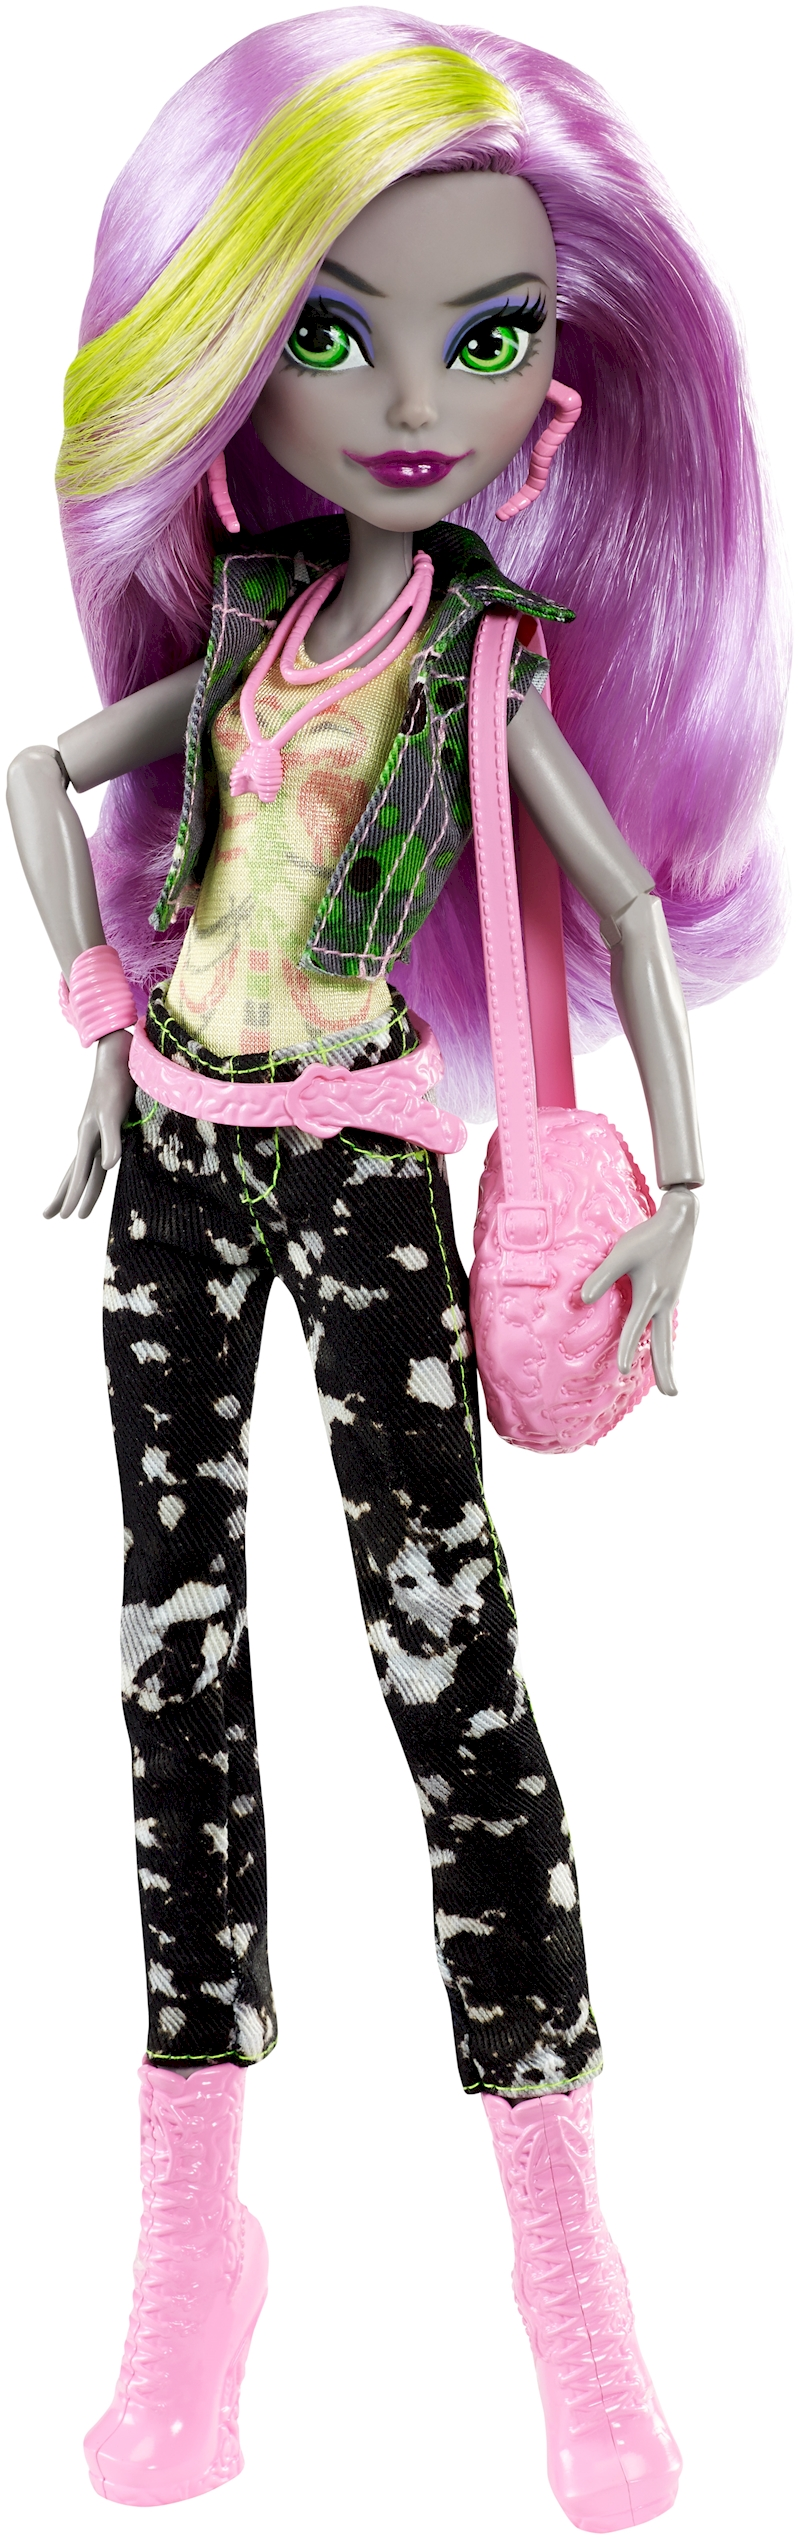 monster high characters dolls